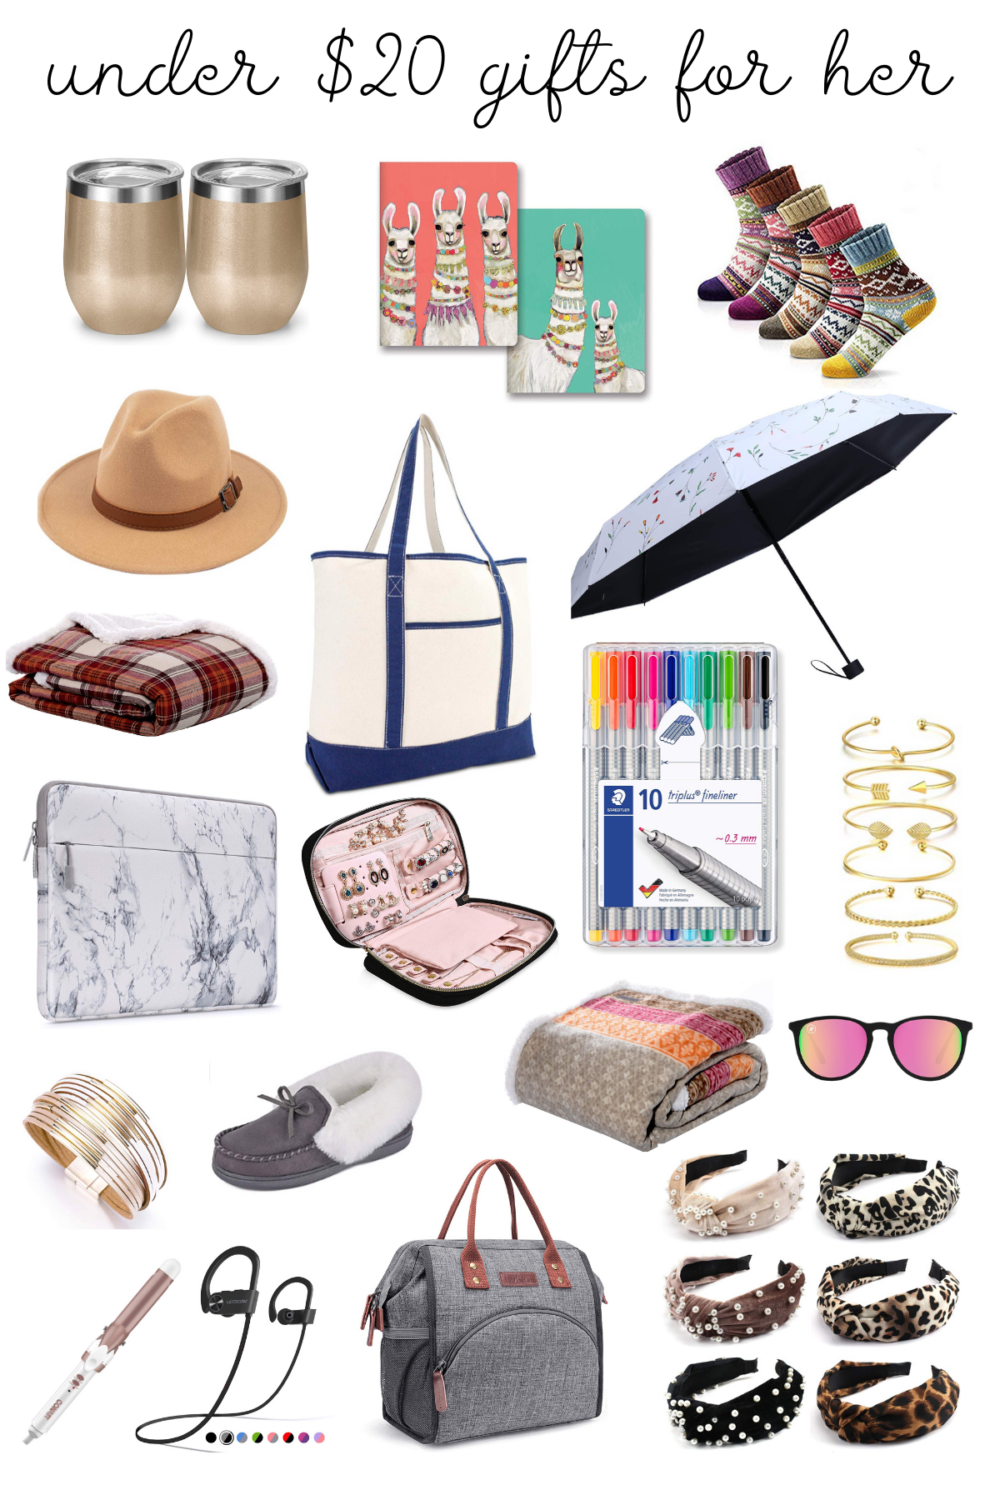 Gifts For Her Under 20 Skye Mclain